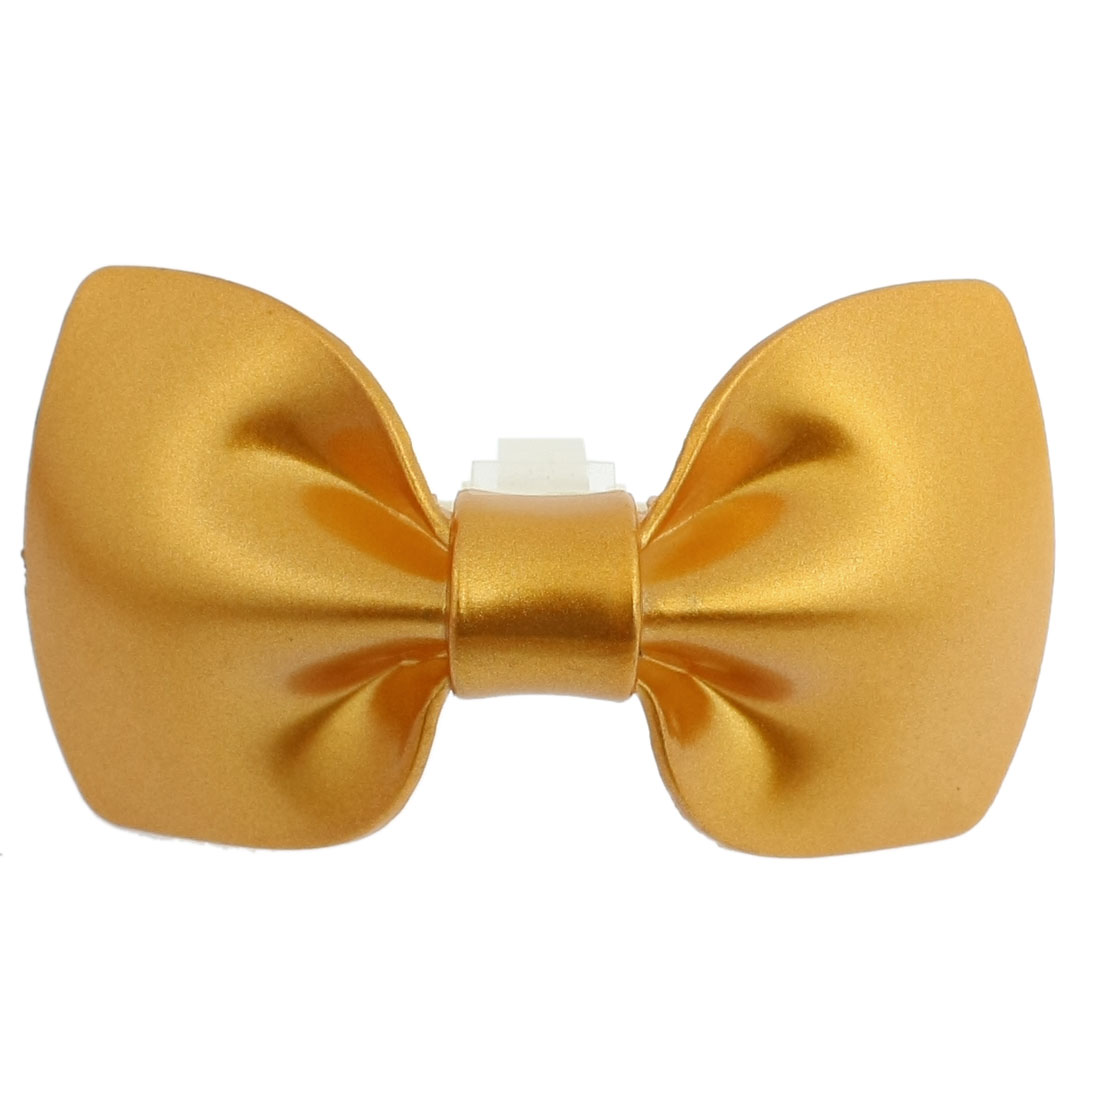 Bowtie Shaped Air Fragrance Freshener Gold Tone Car Auto Vent Decor